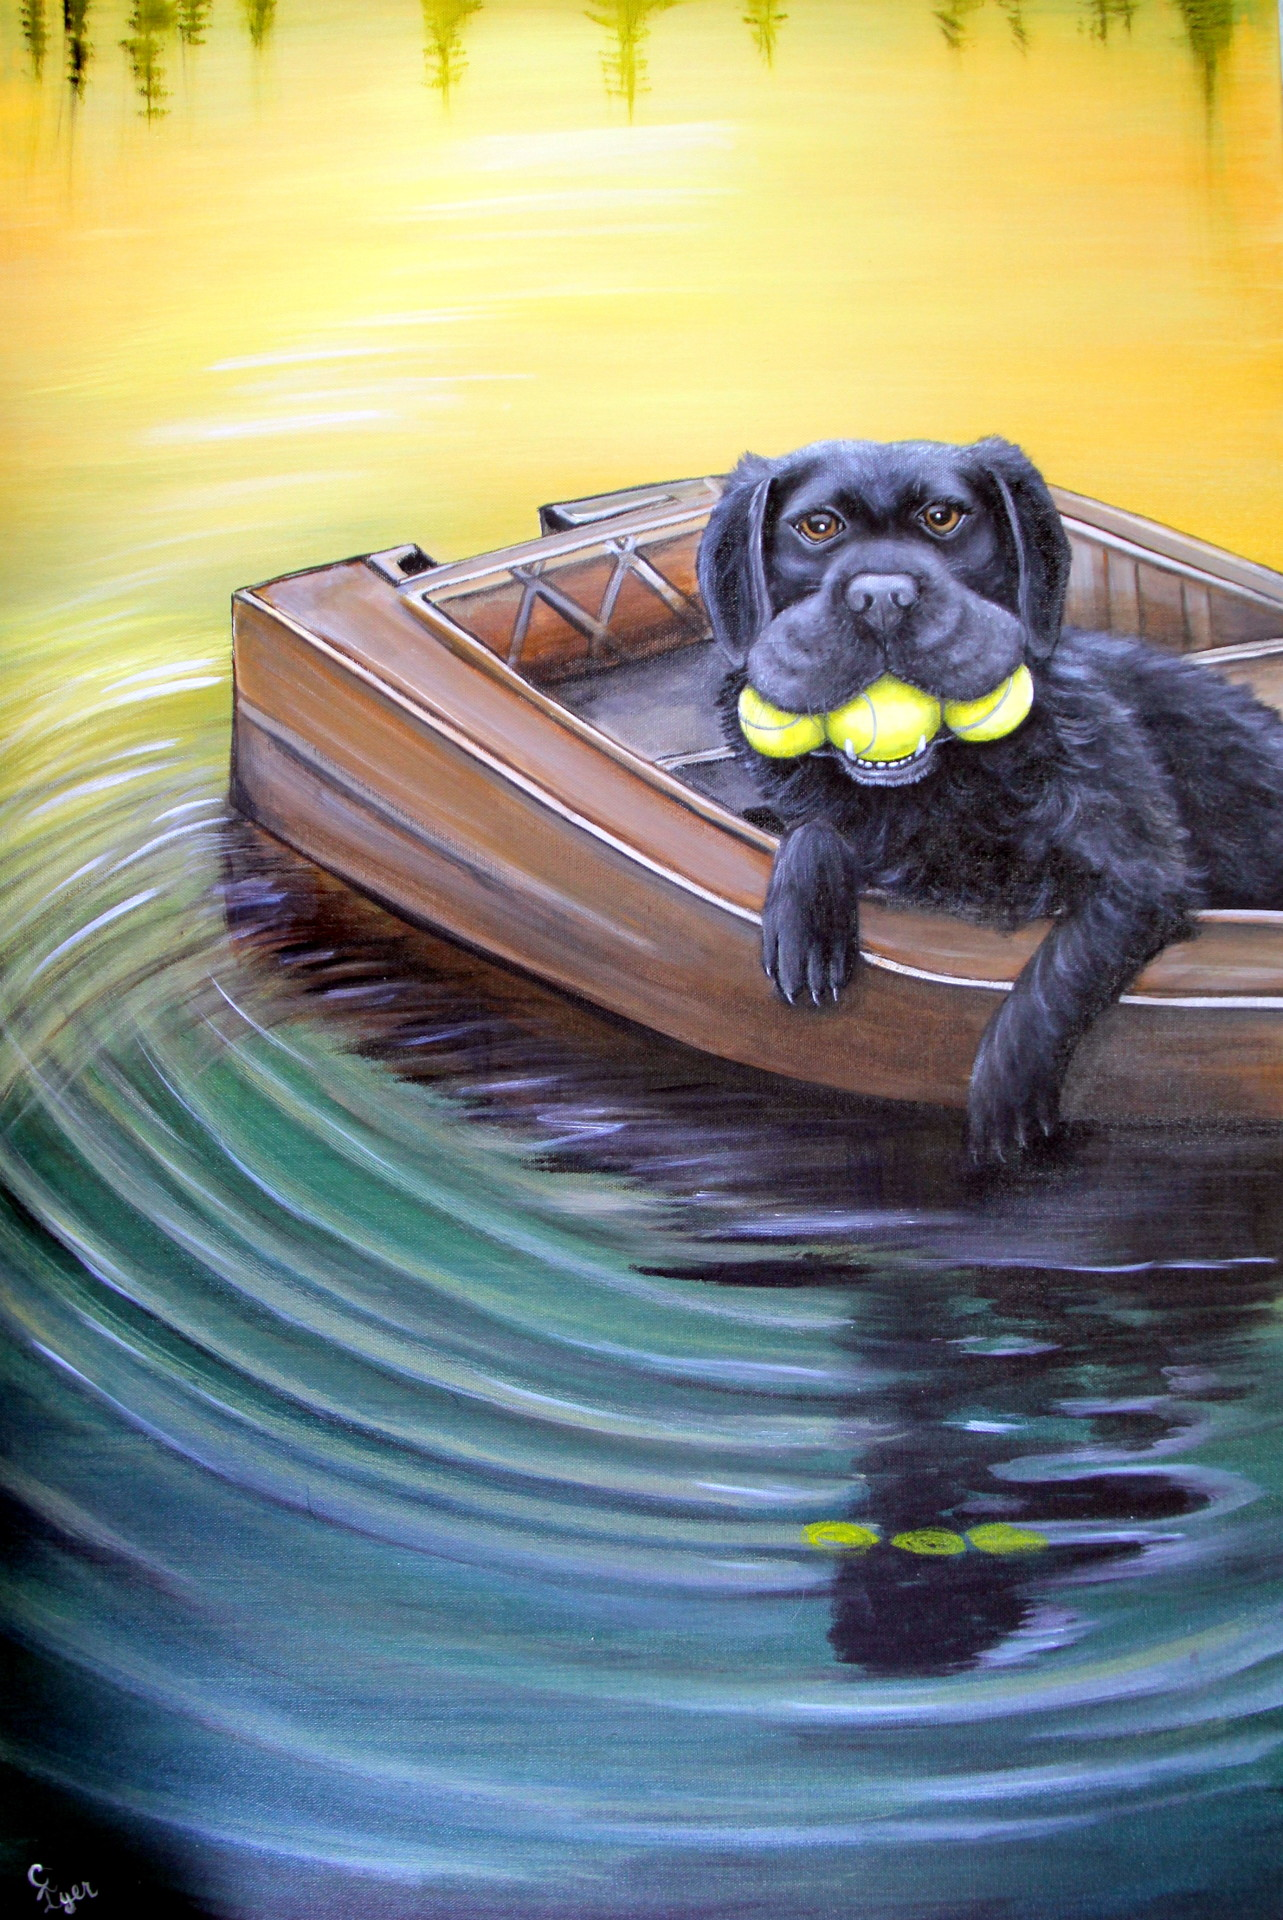 Dog with Balls in Boat